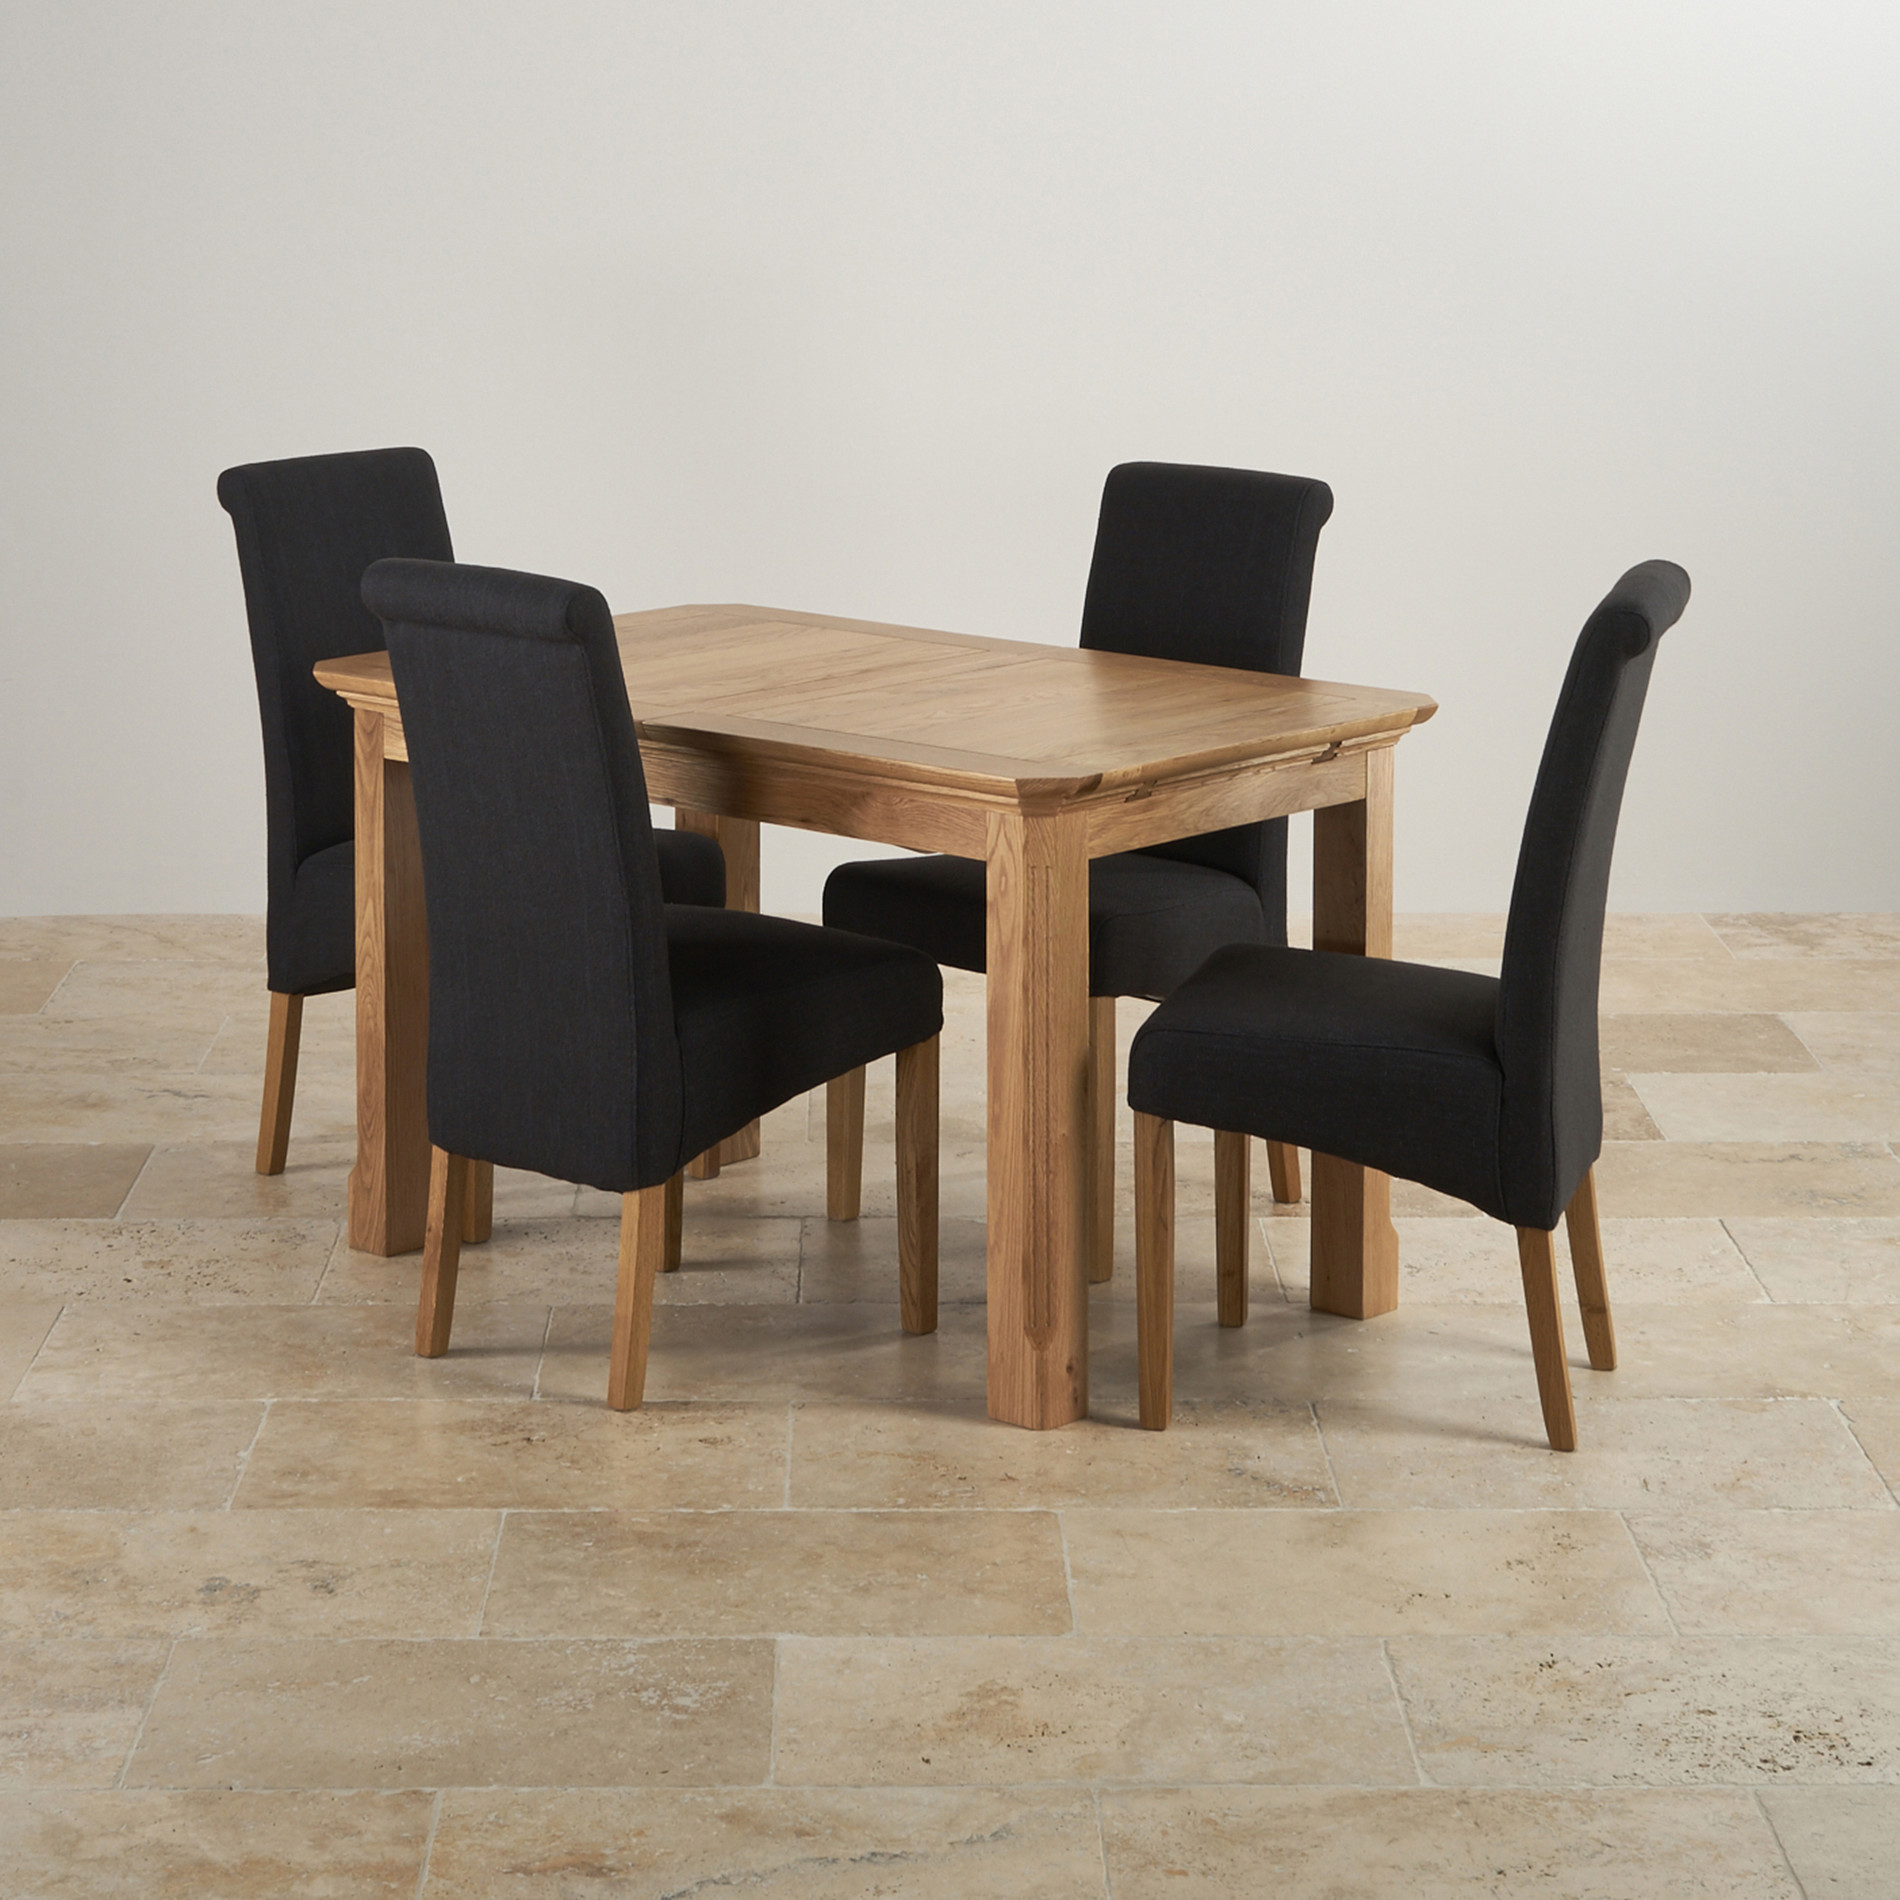 Black fabric dining chairs - Edinburgh Natural Real Oak 4ft Extending Table With 4 Scroll Back Plain Black Fabric Chairs